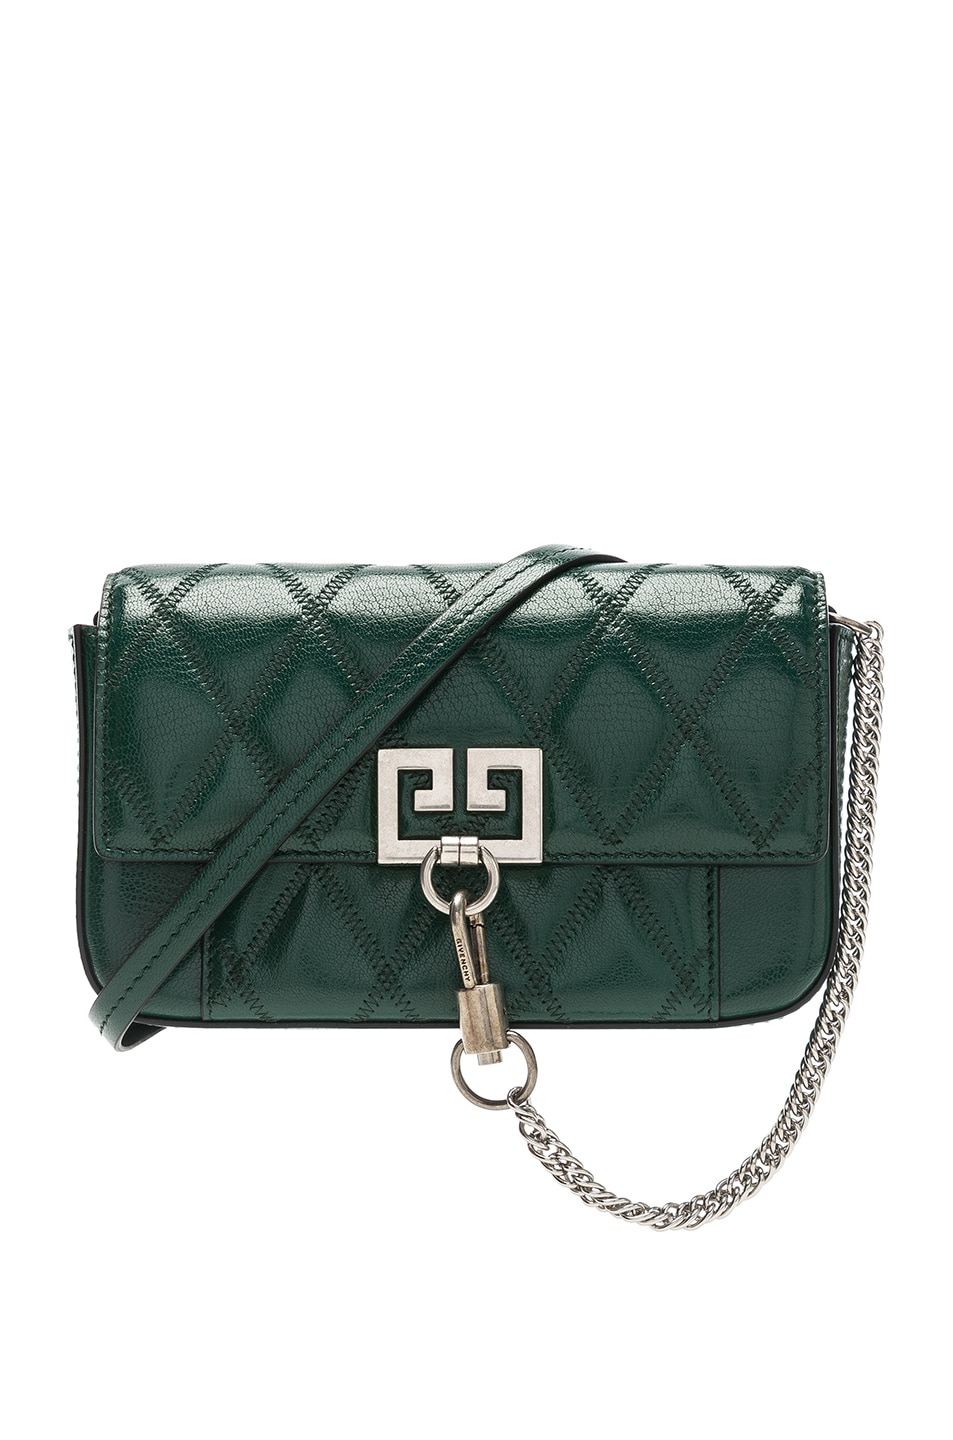 24dd930b3b38 Image 1 of Givenchy Pocket Chain Wallet in Green Forest